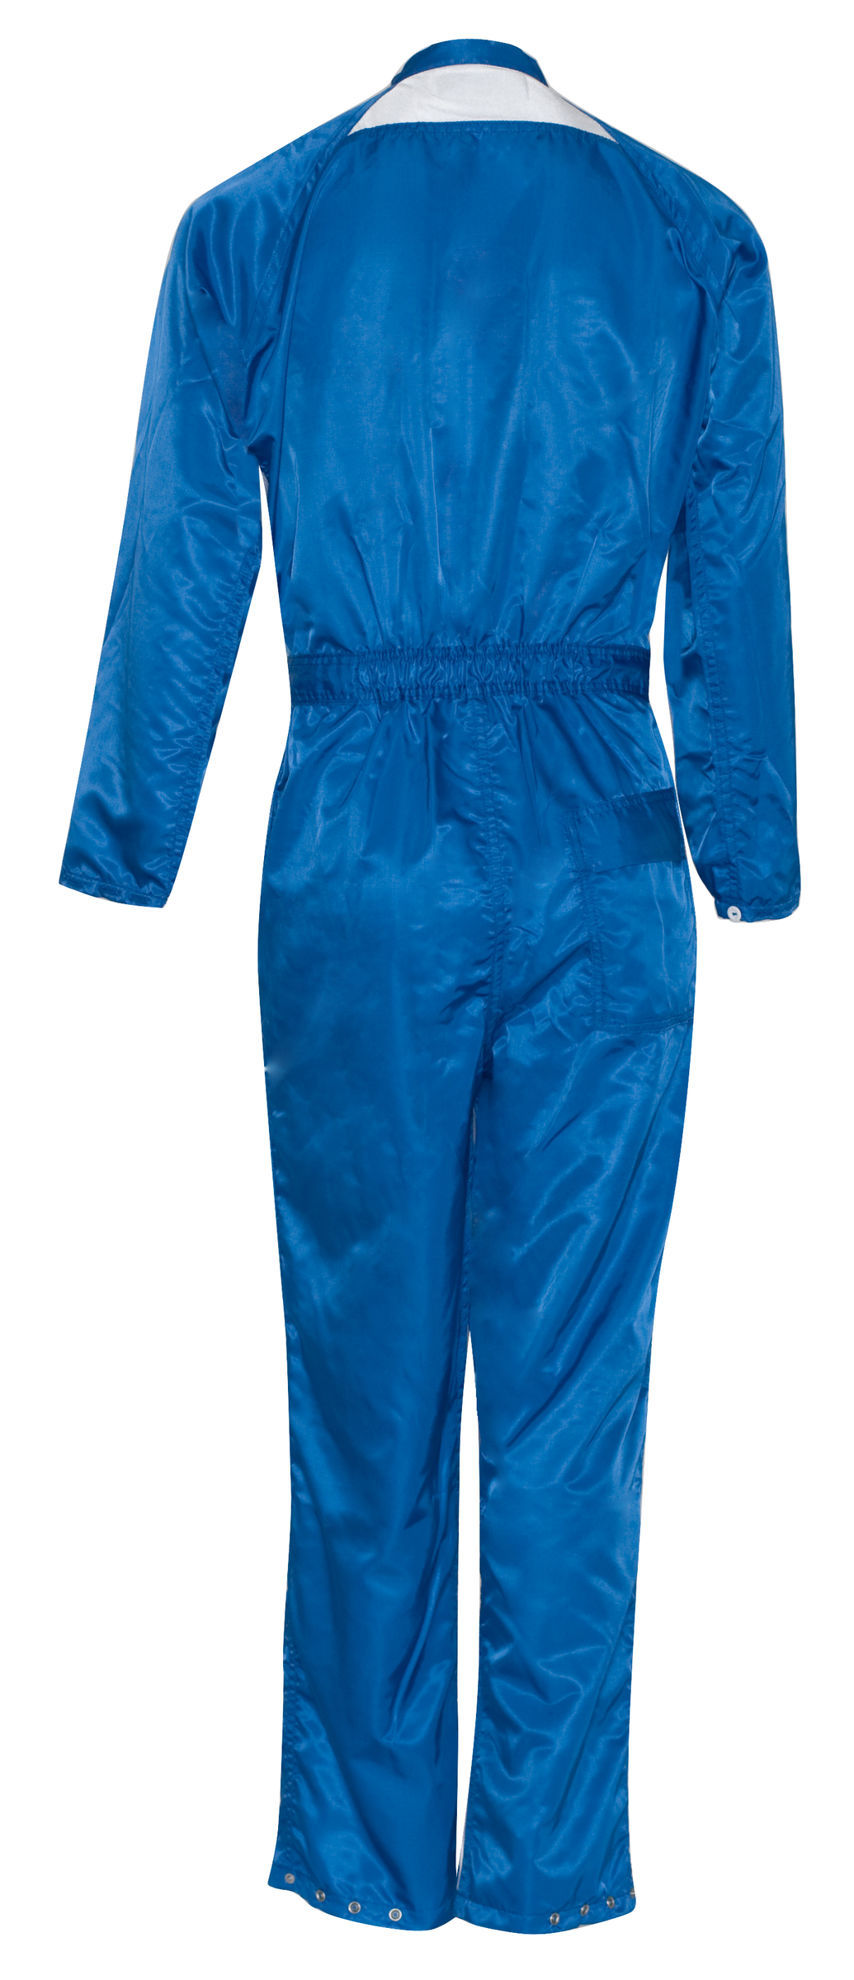 Picture of General Motors Paint Room Coverall with Interior Barcode-Made in the USA-Union Made (1st Quality)